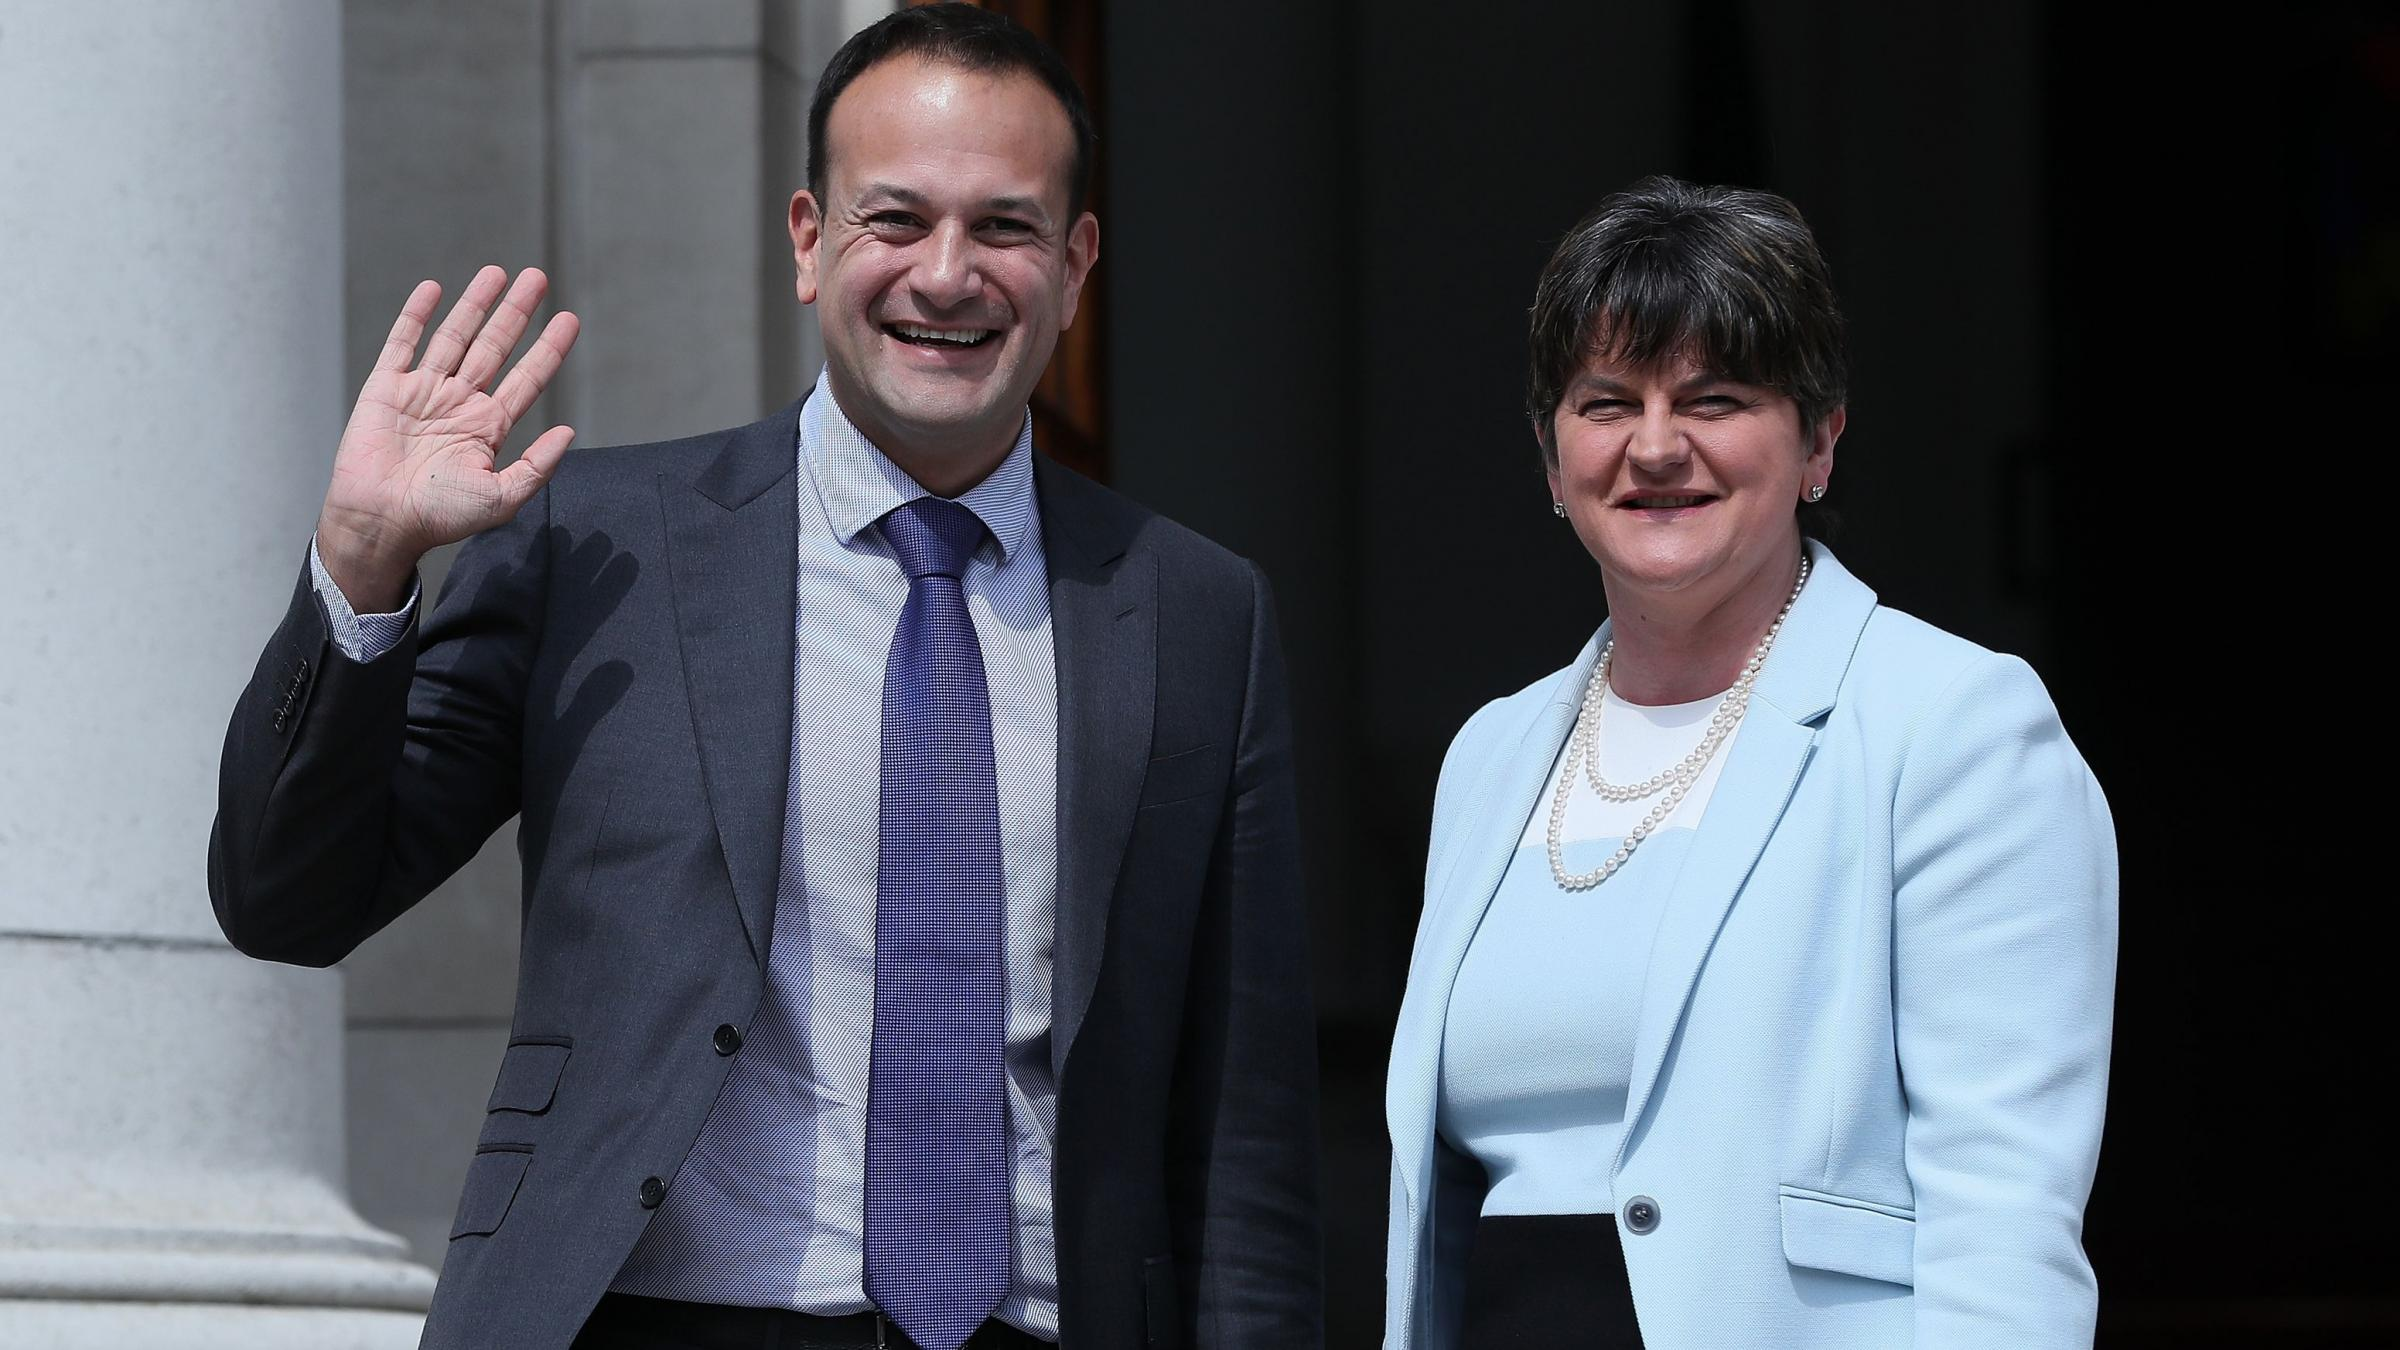 Irish PM holds separate talks with leaders of Northern Ireland parties